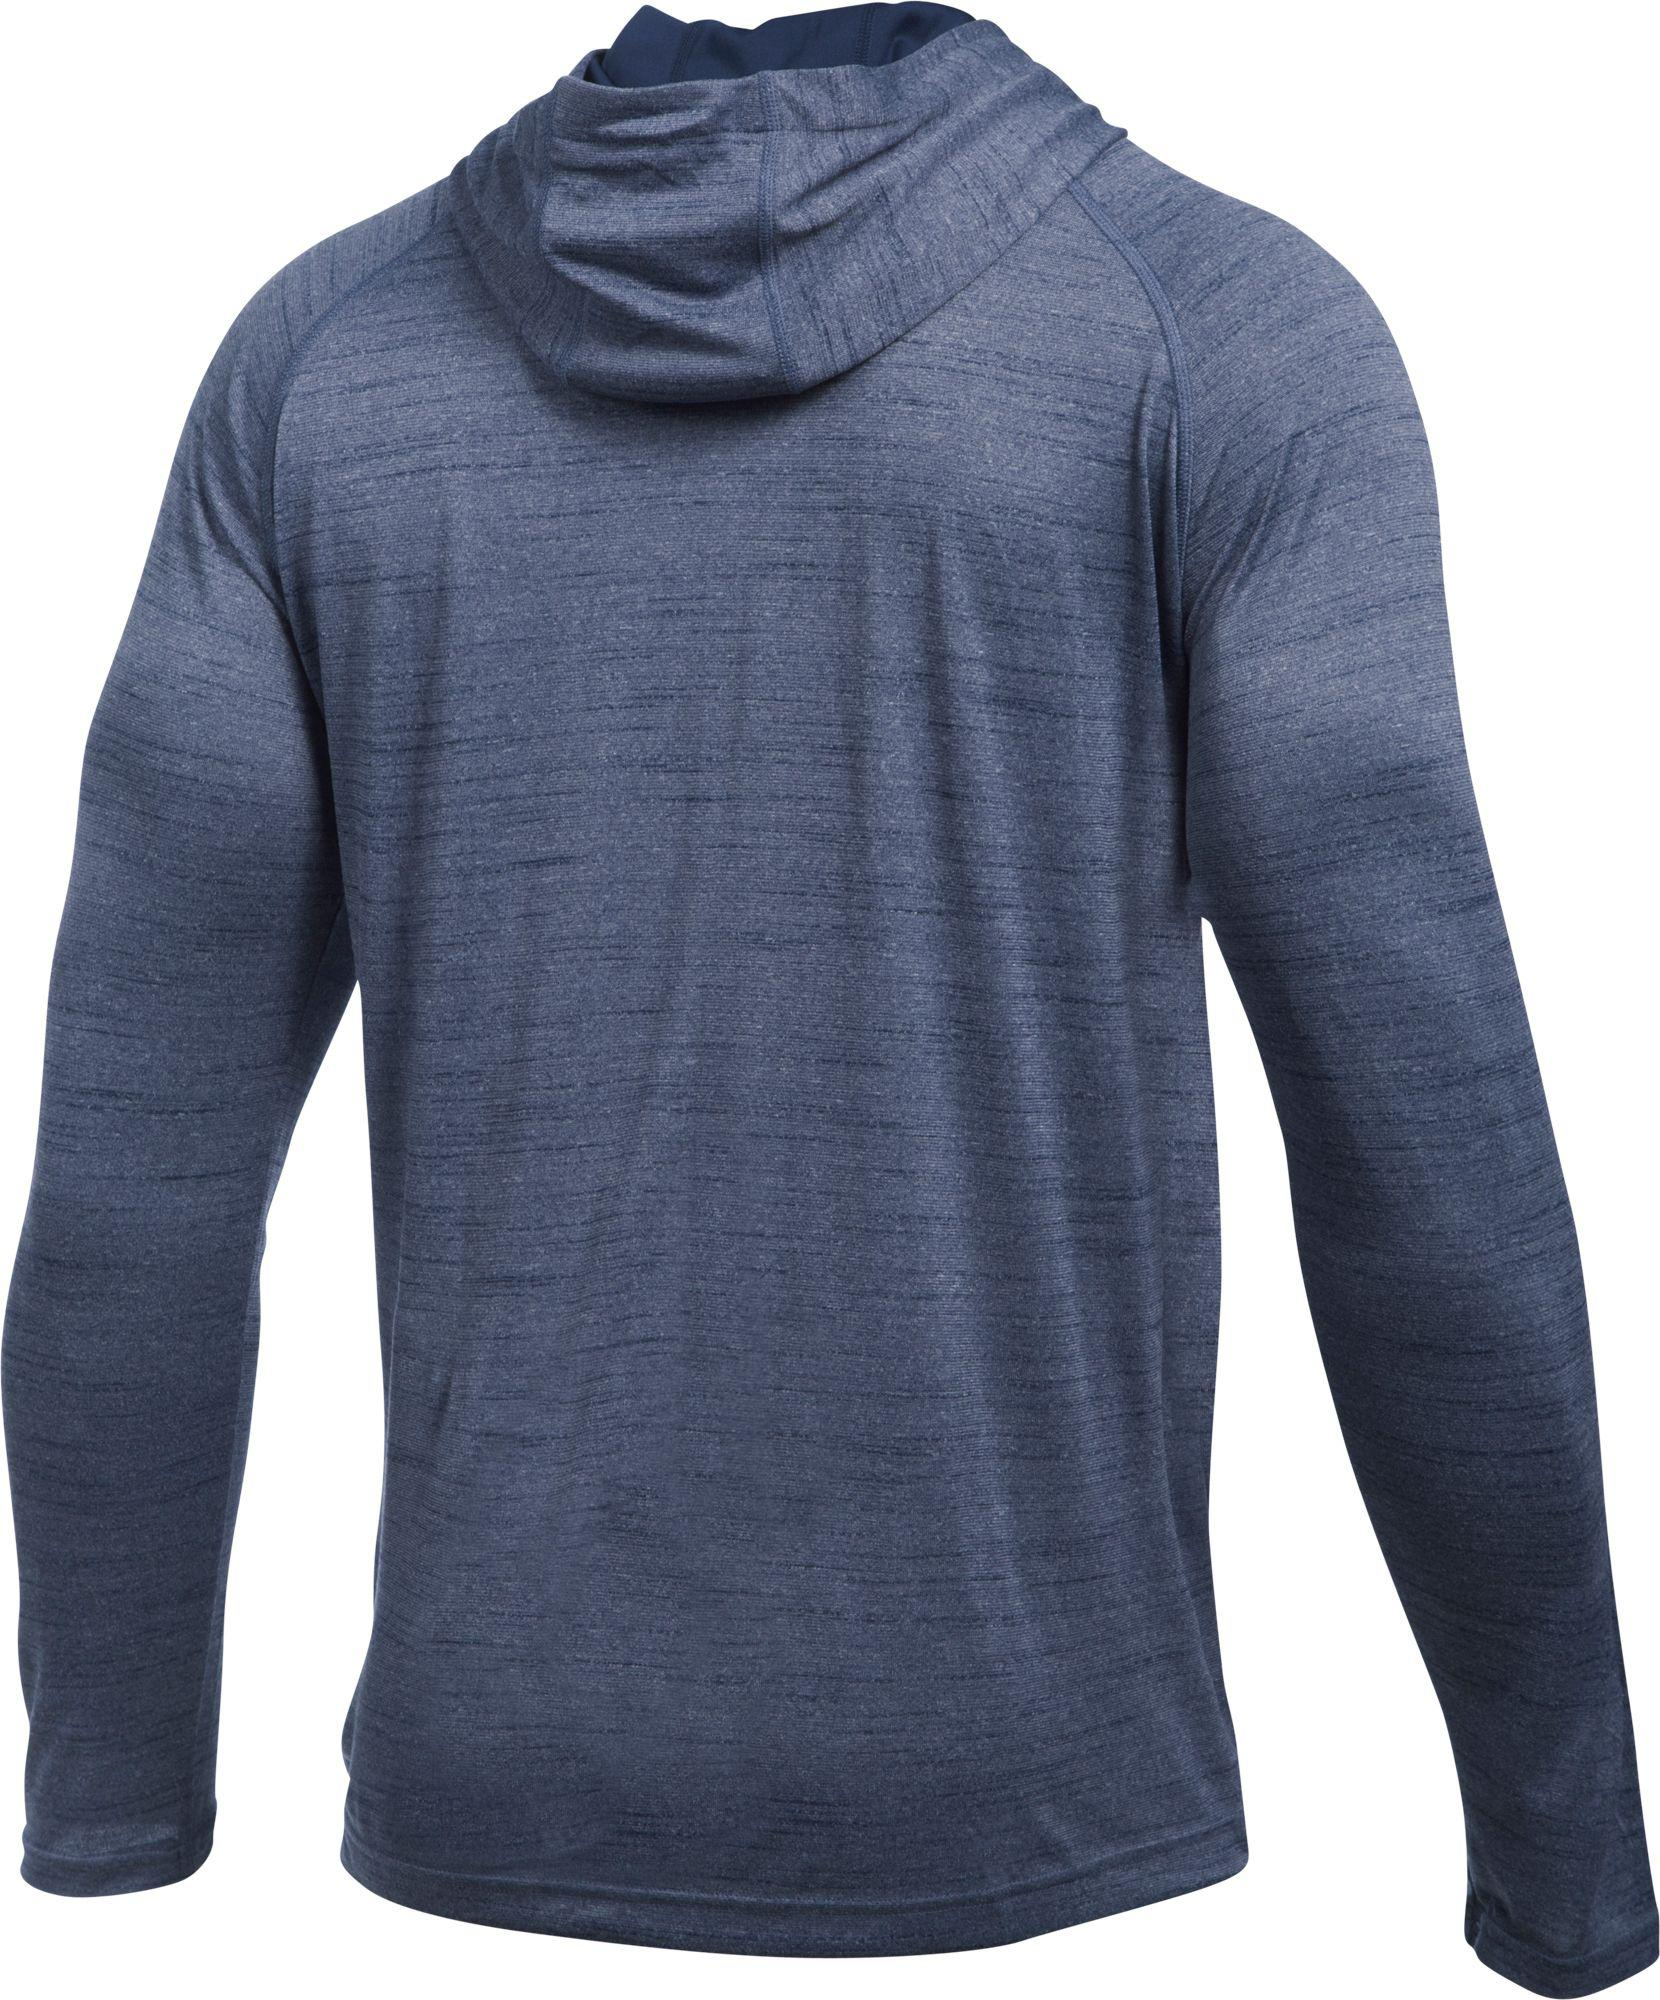 75e414b8a5e0 Lyst - Under Armour Tech Popover Henley Hoodie in Blue for Men